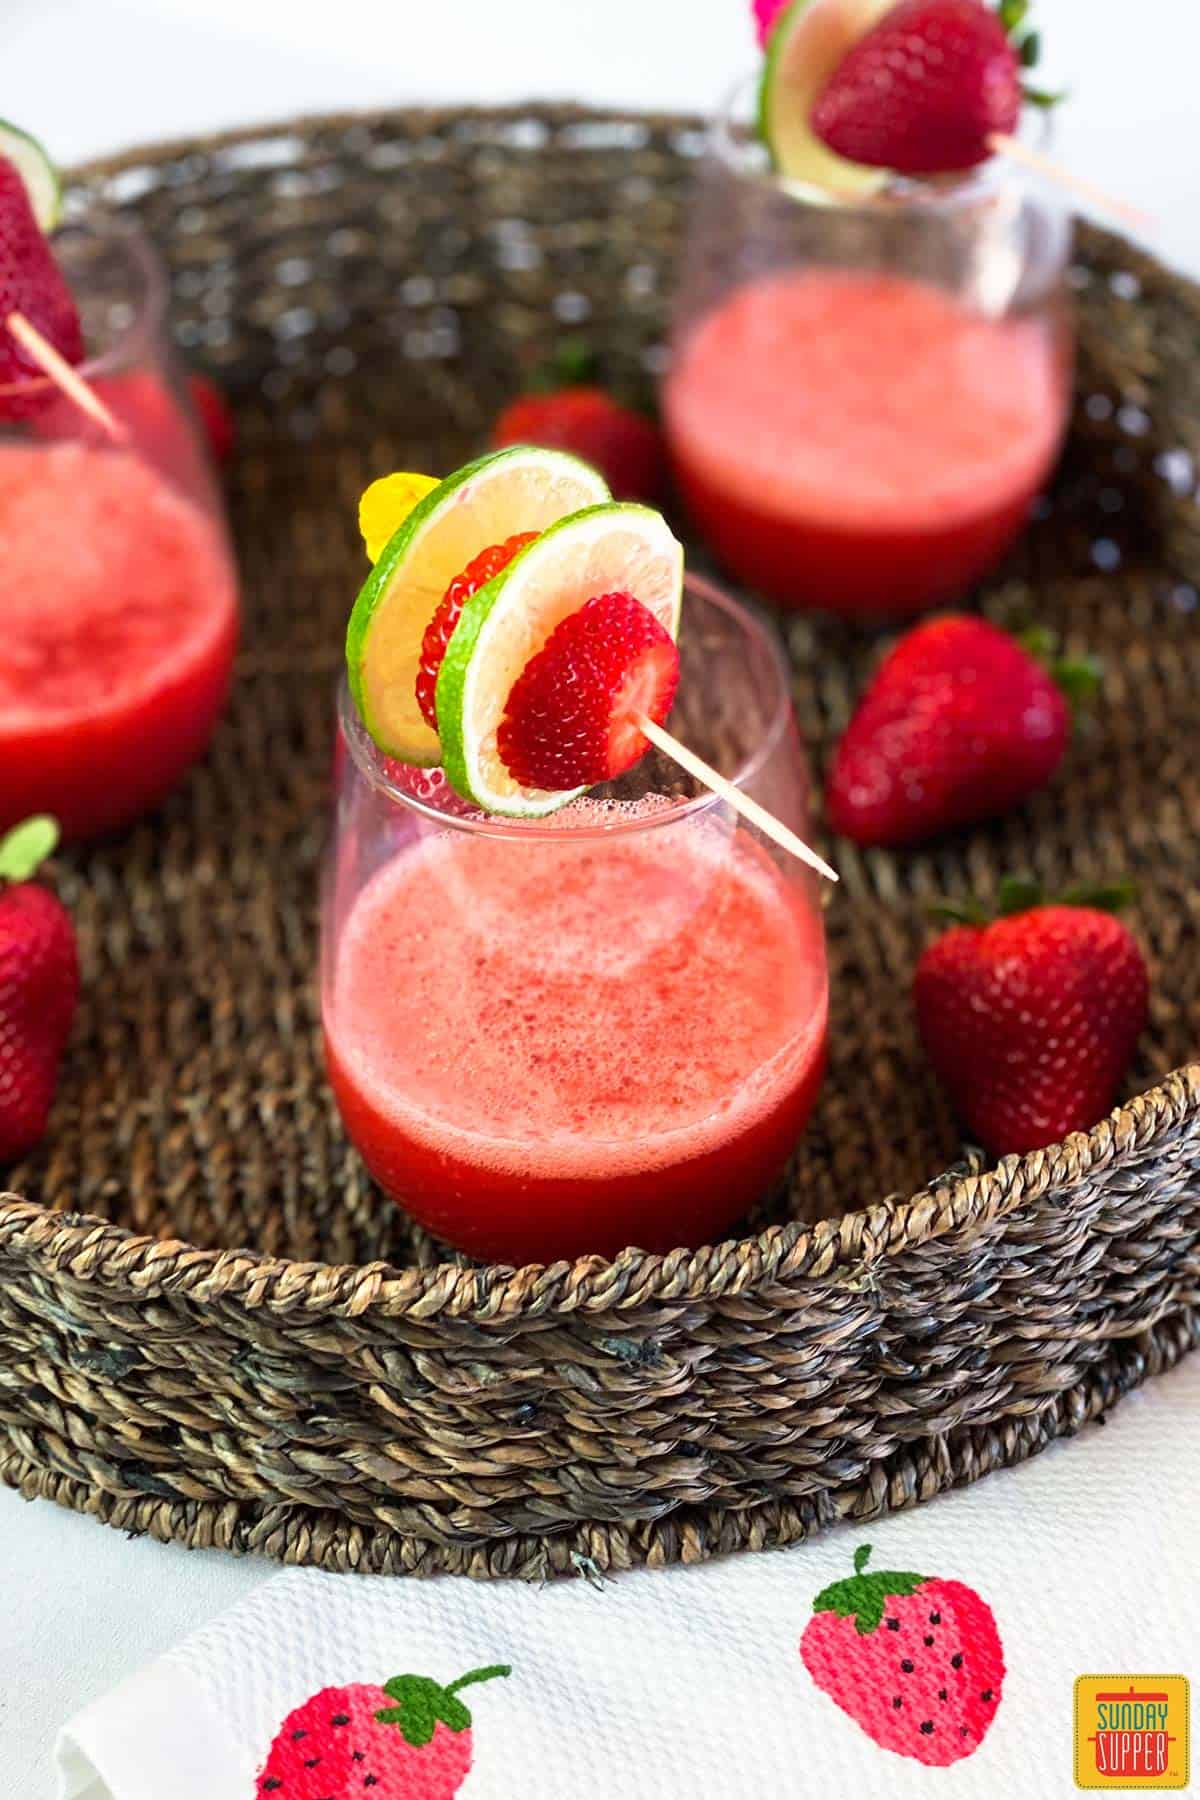 Three glasses of strawberry daiquiri recipe in a flat-bottom round basket with fresh strawberries